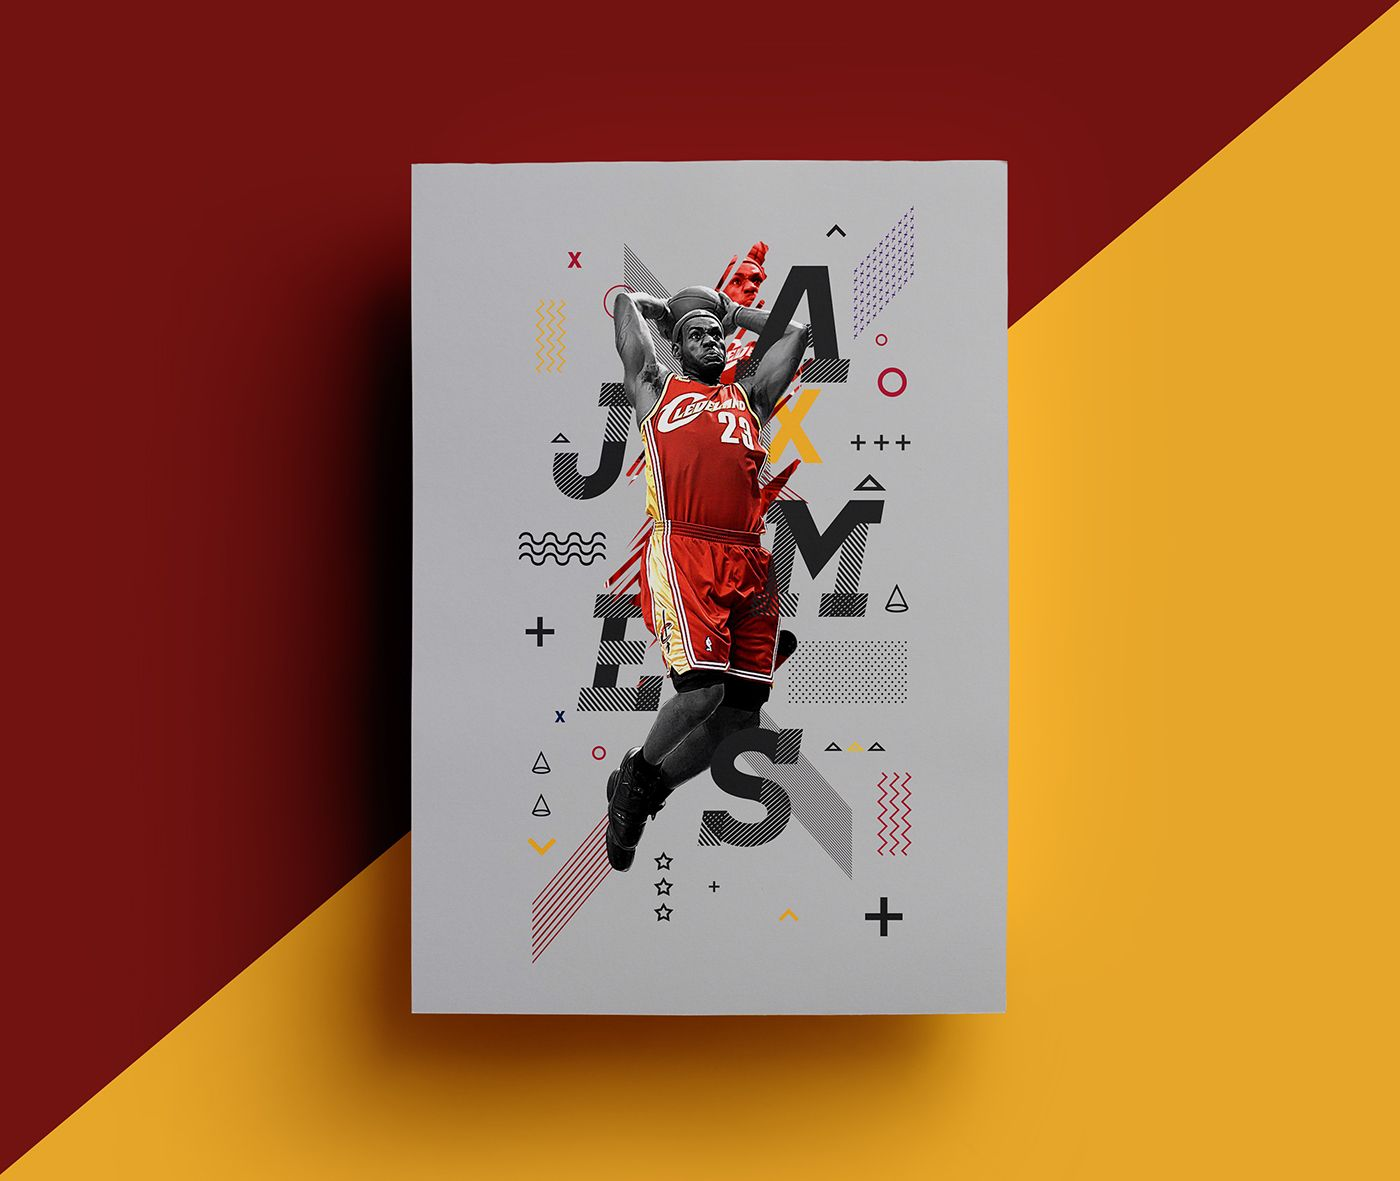 Poster design behance - Nike Poster Sports Graphics Sport Design Poster Designs Contemporary Design Cover Design Graphic Design Athletics Flyers